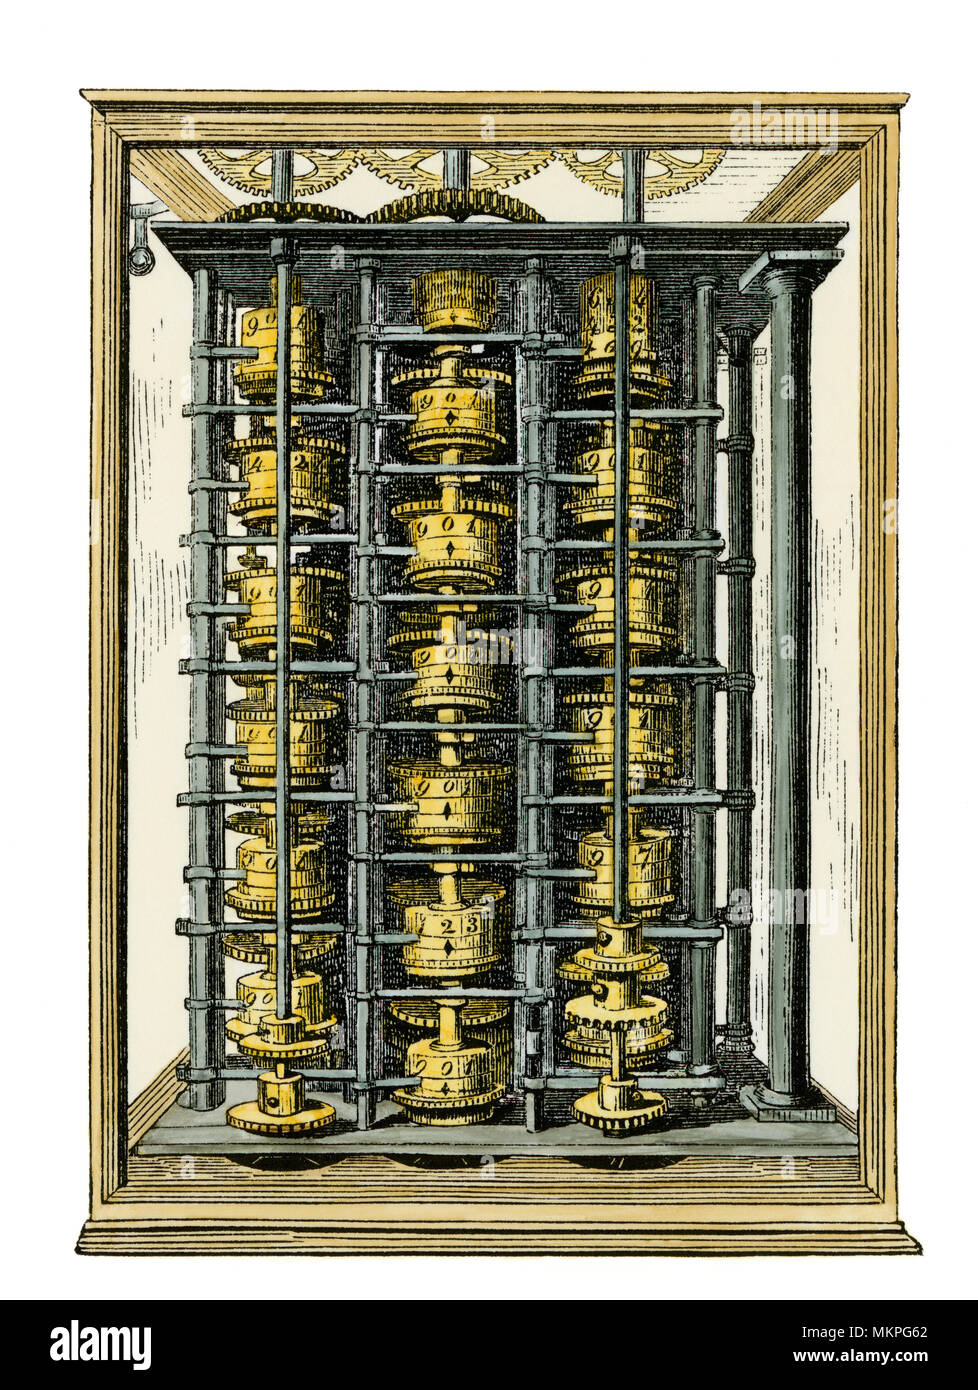 Charles Babbage's calculating machine, the 'difference engine,' 1800s. Hand-colored woodcut of an illustration - Stock Image